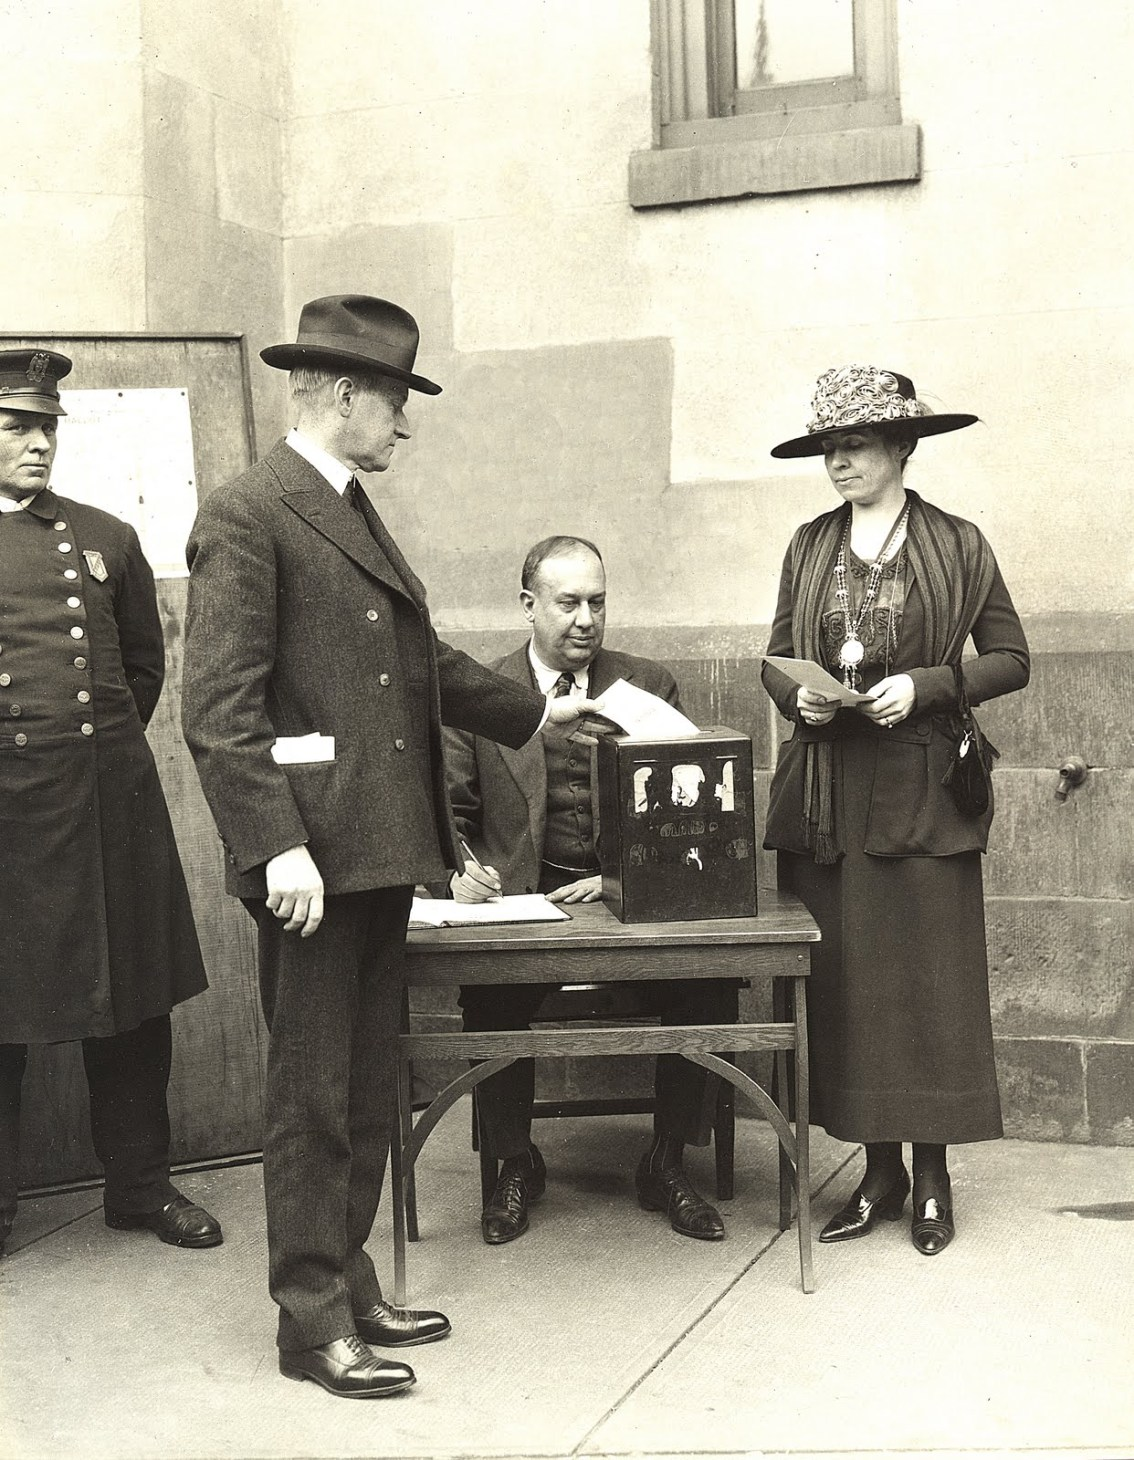 The Coolidges vote together, November 2, 1920. The Nineteenth Amendment, ratified in August of 1920, recognized suffrage for women nationwide and enabled Grace to join her husband and to cast her ballot for the first time.